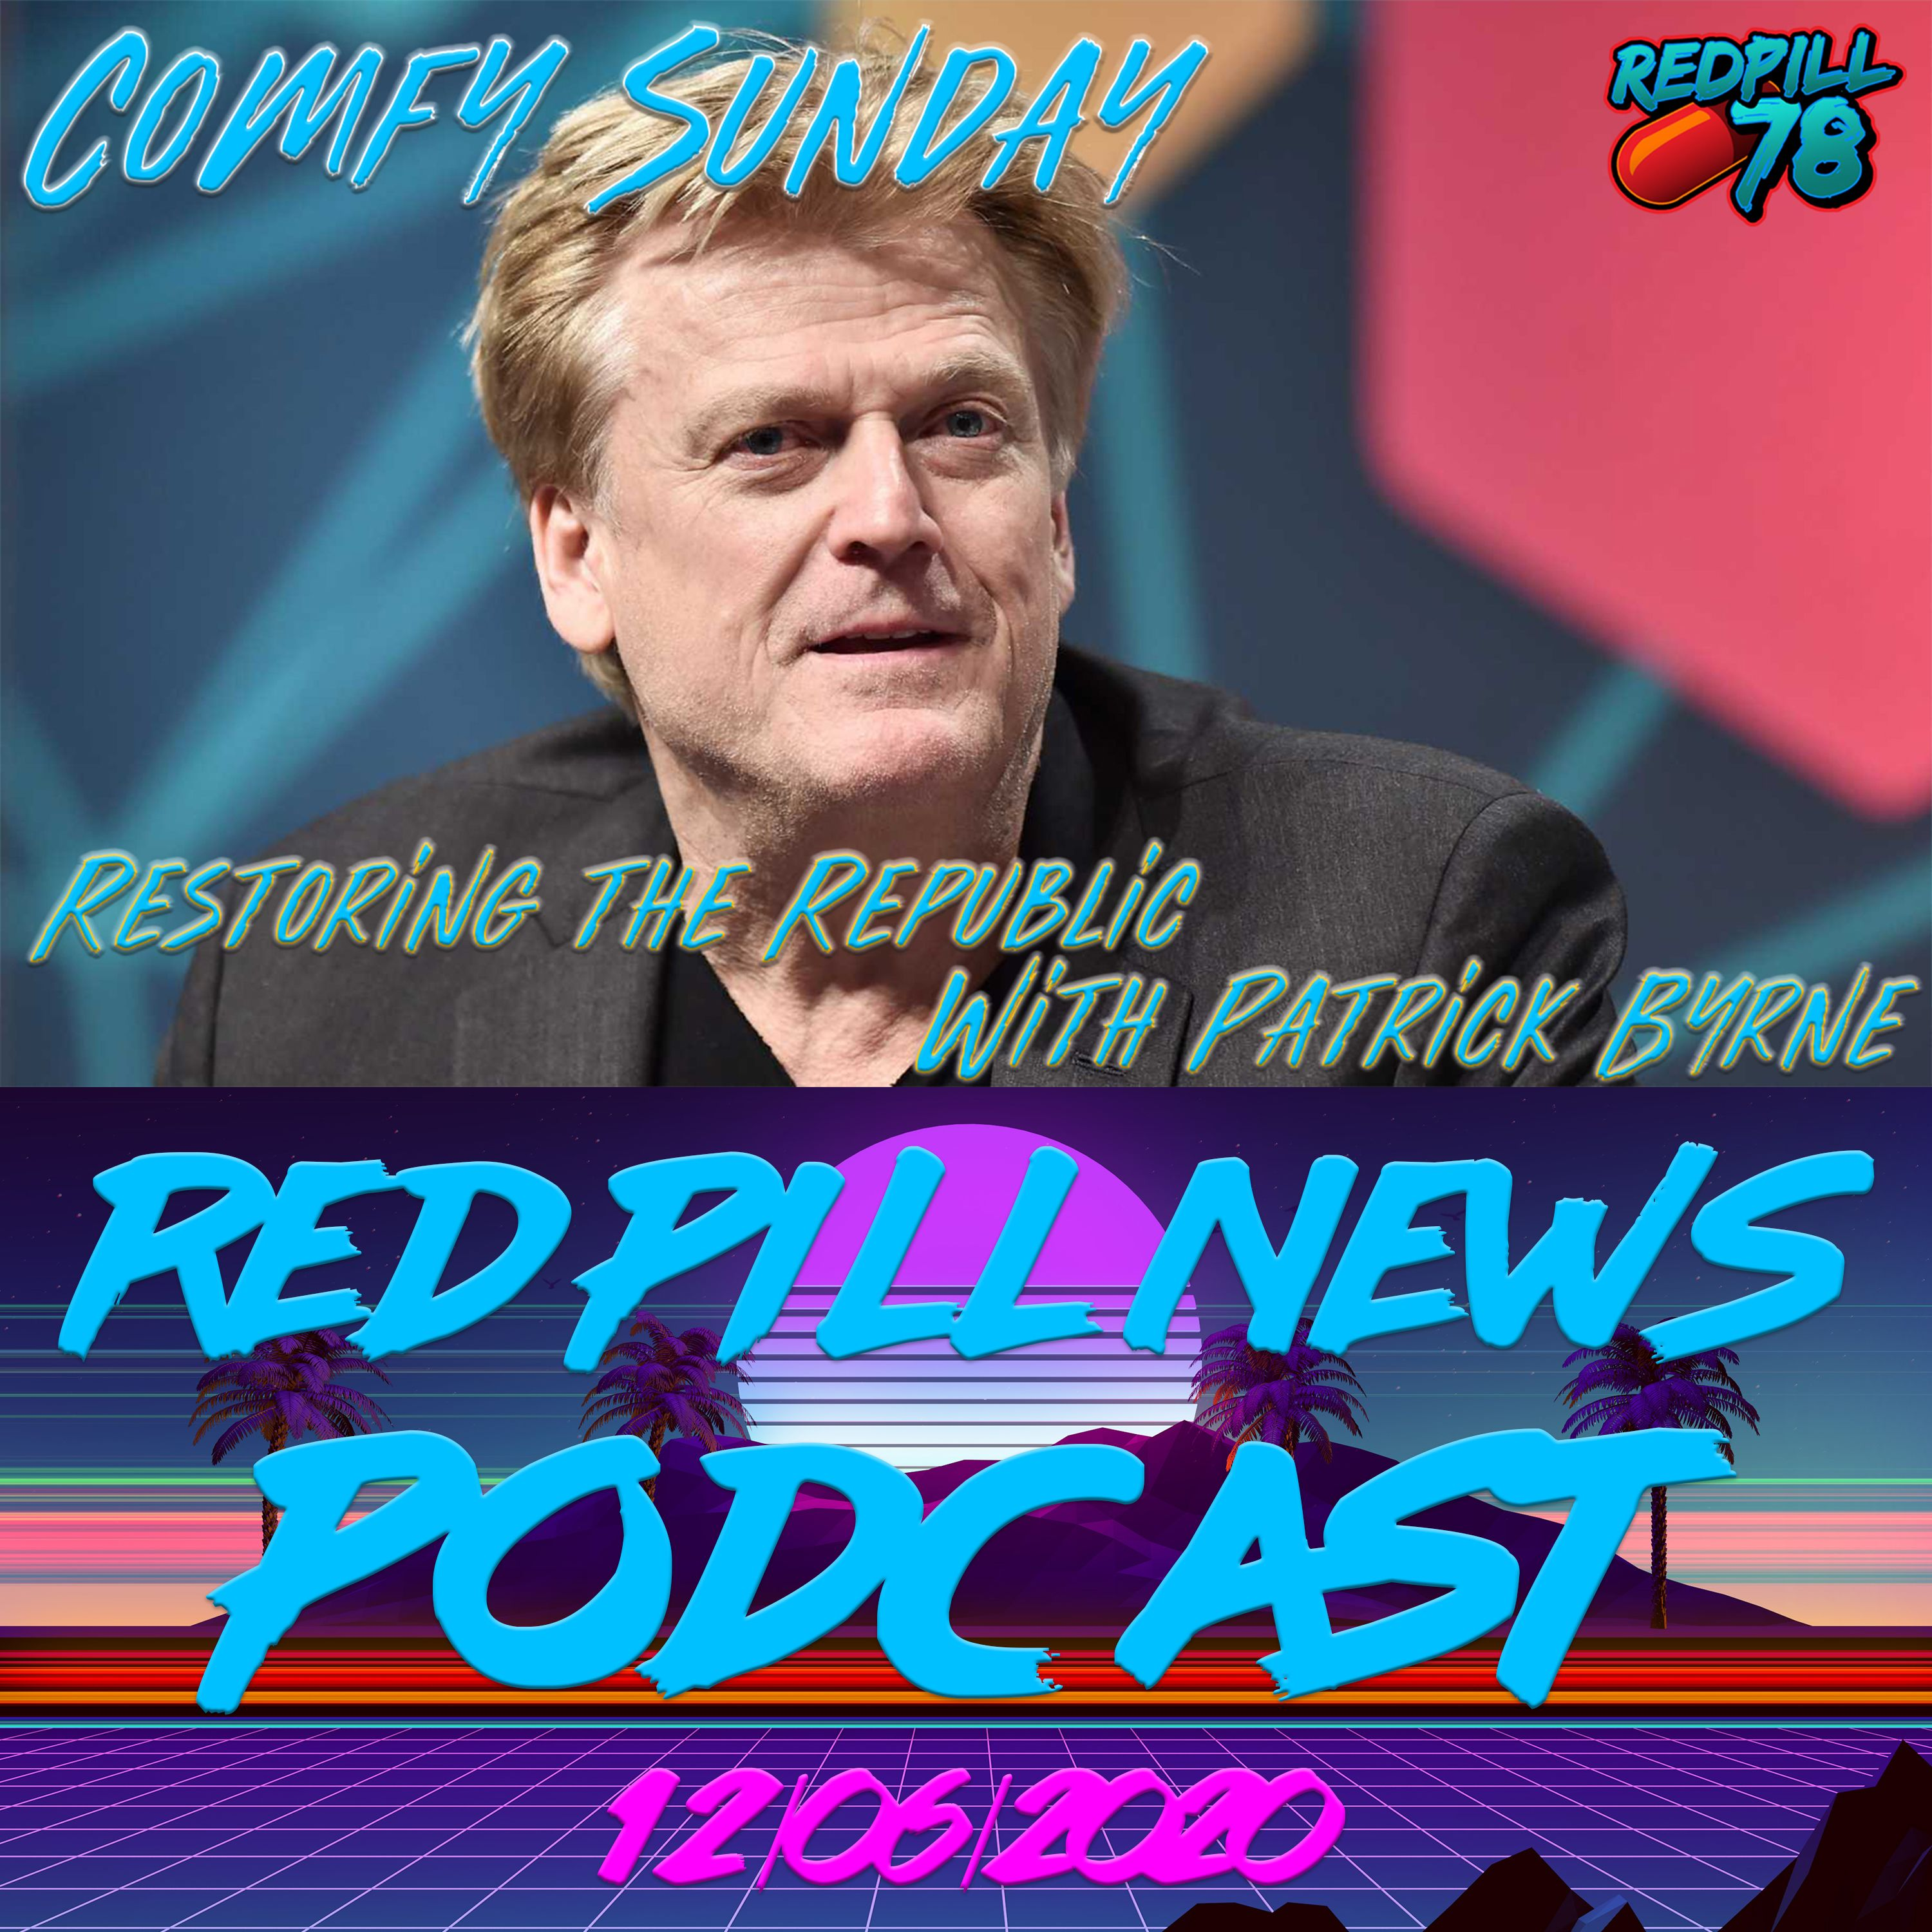 Restoring The Republic with Patrick Byrne on Comfy Sunday